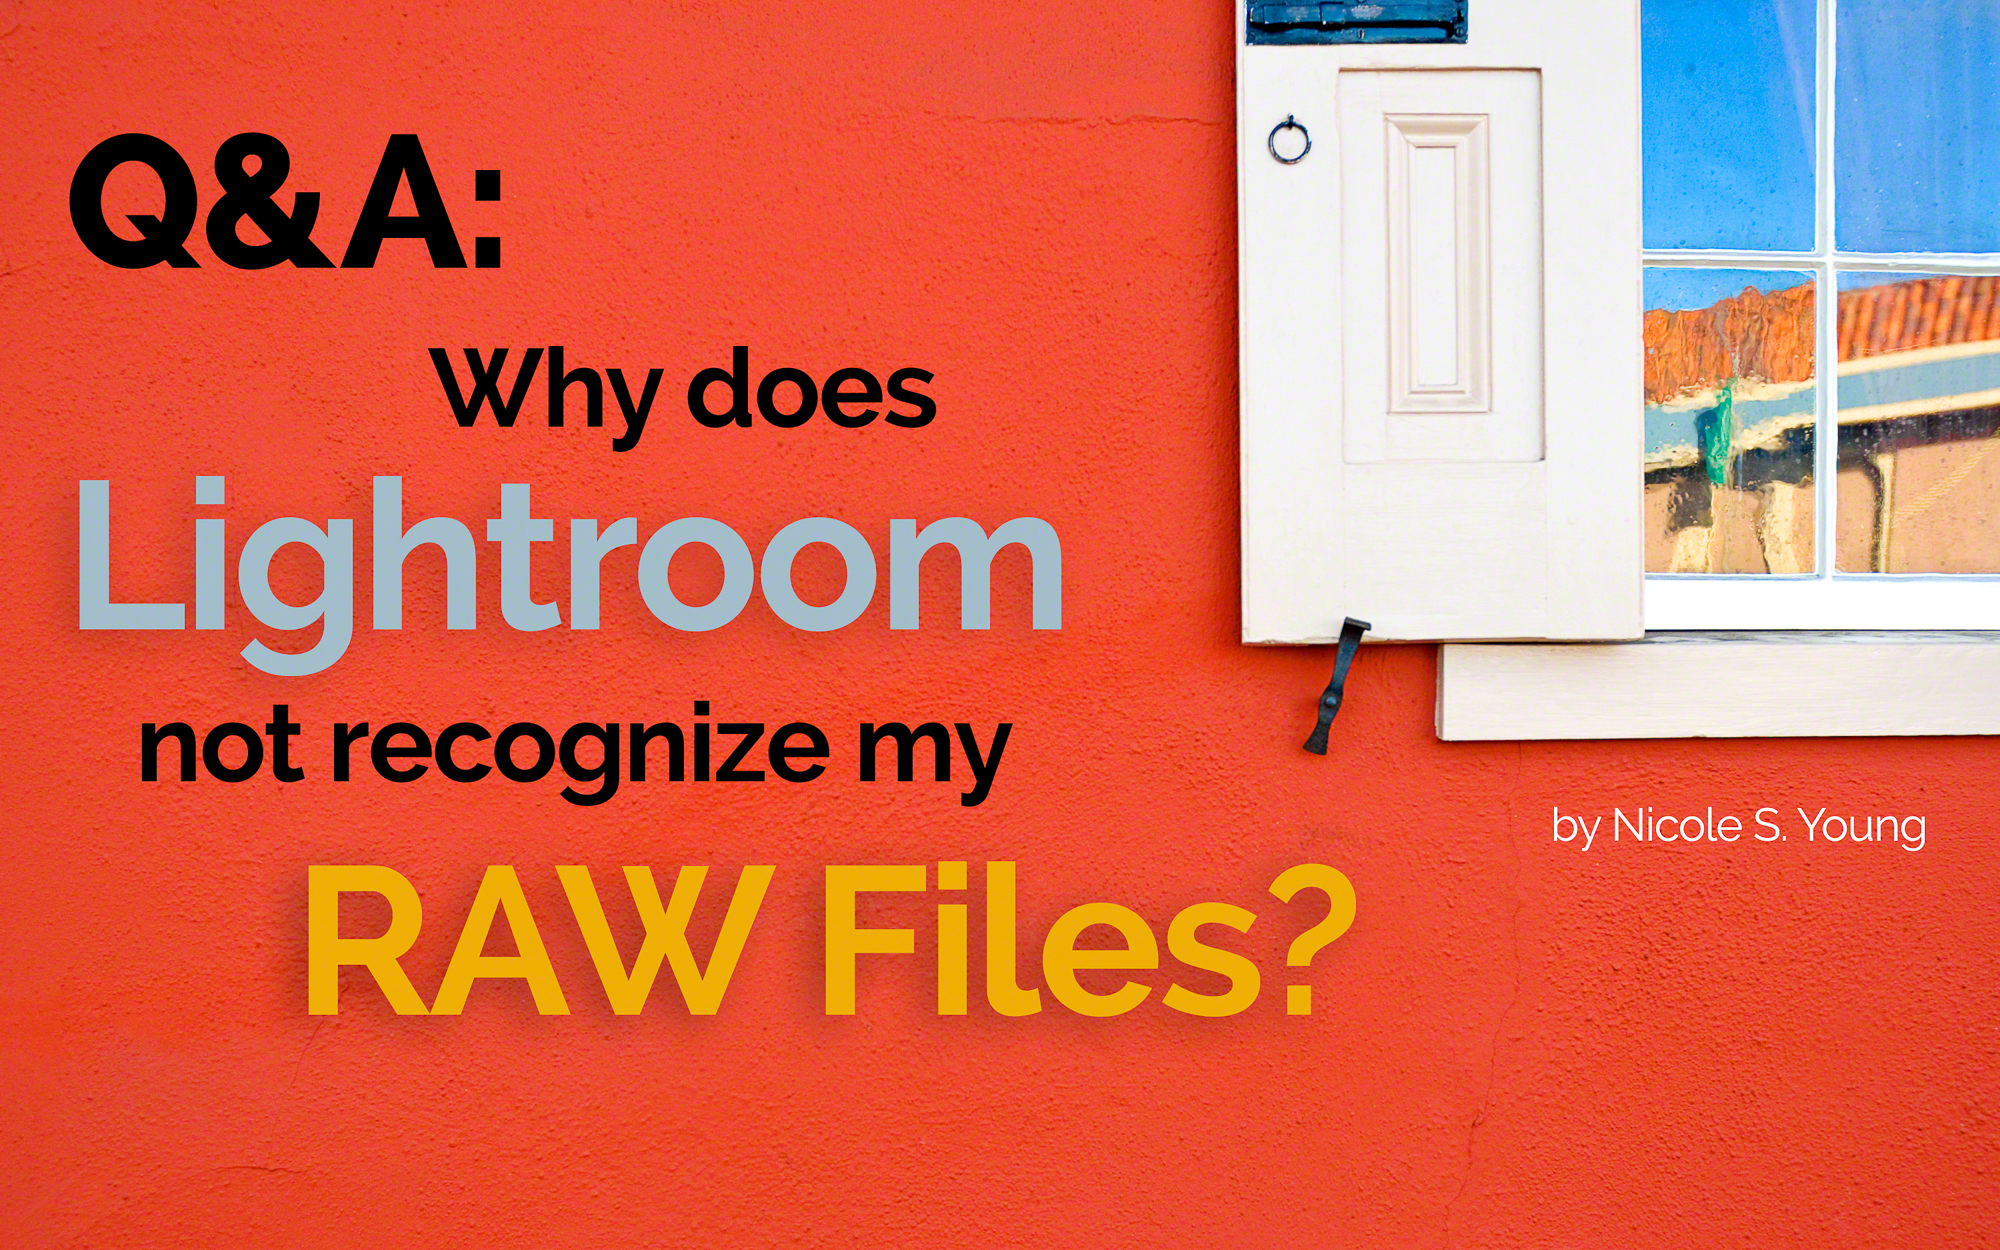 Q&A: Why does Lightroom not recognize my camera's RAW files